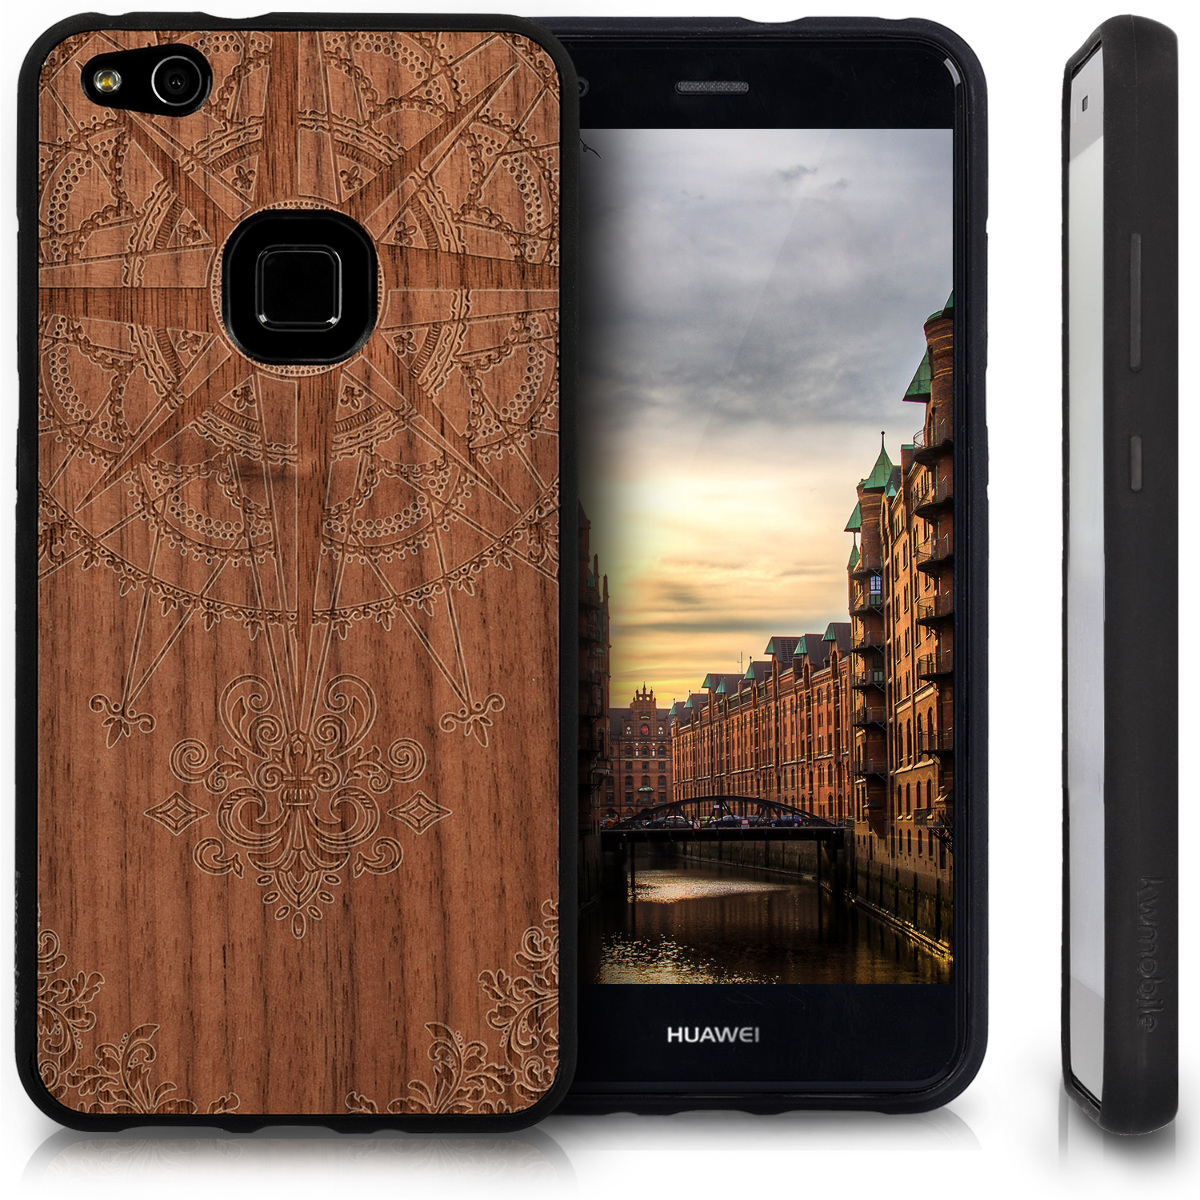 protective case for huawei p10 lite wooden case tpu bumper. Black Bedroom Furniture Sets. Home Design Ideas